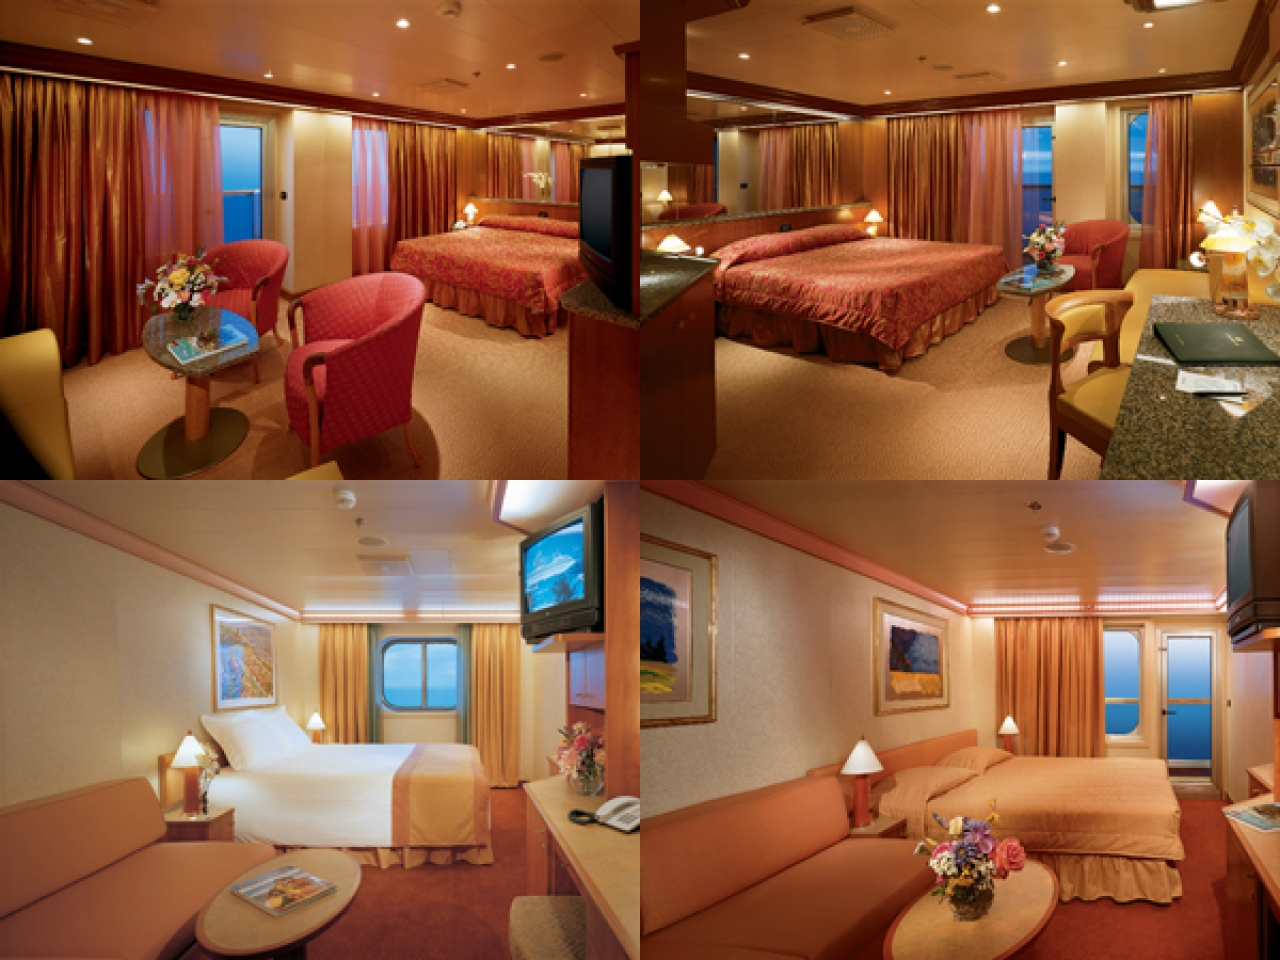 Carnival Glory Cruise Ship Rooms Carnival Glory Cruise Ship Tour Carnival Cruise Room